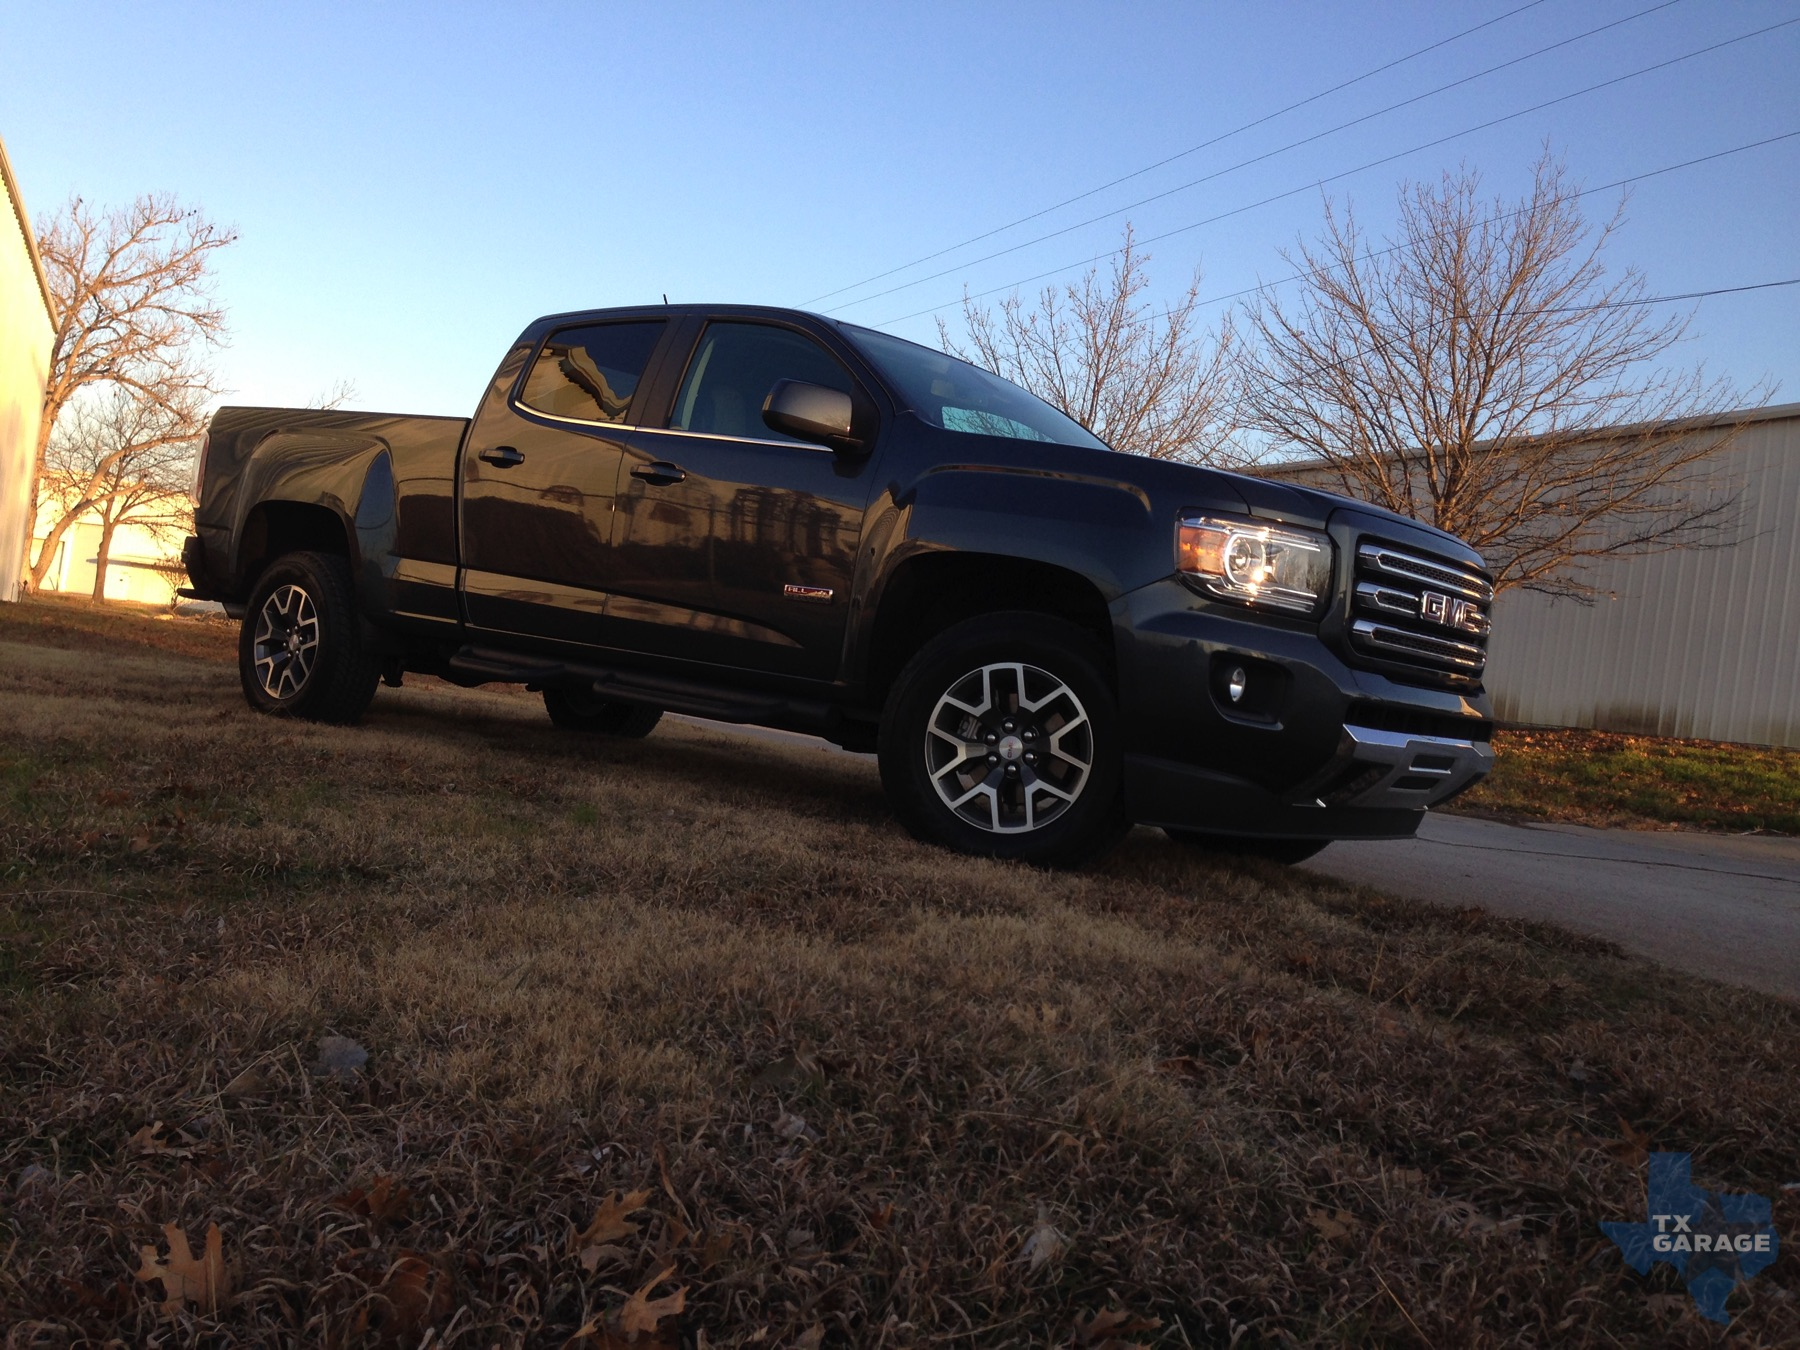 The 2015 GMC Canyon by txGarage